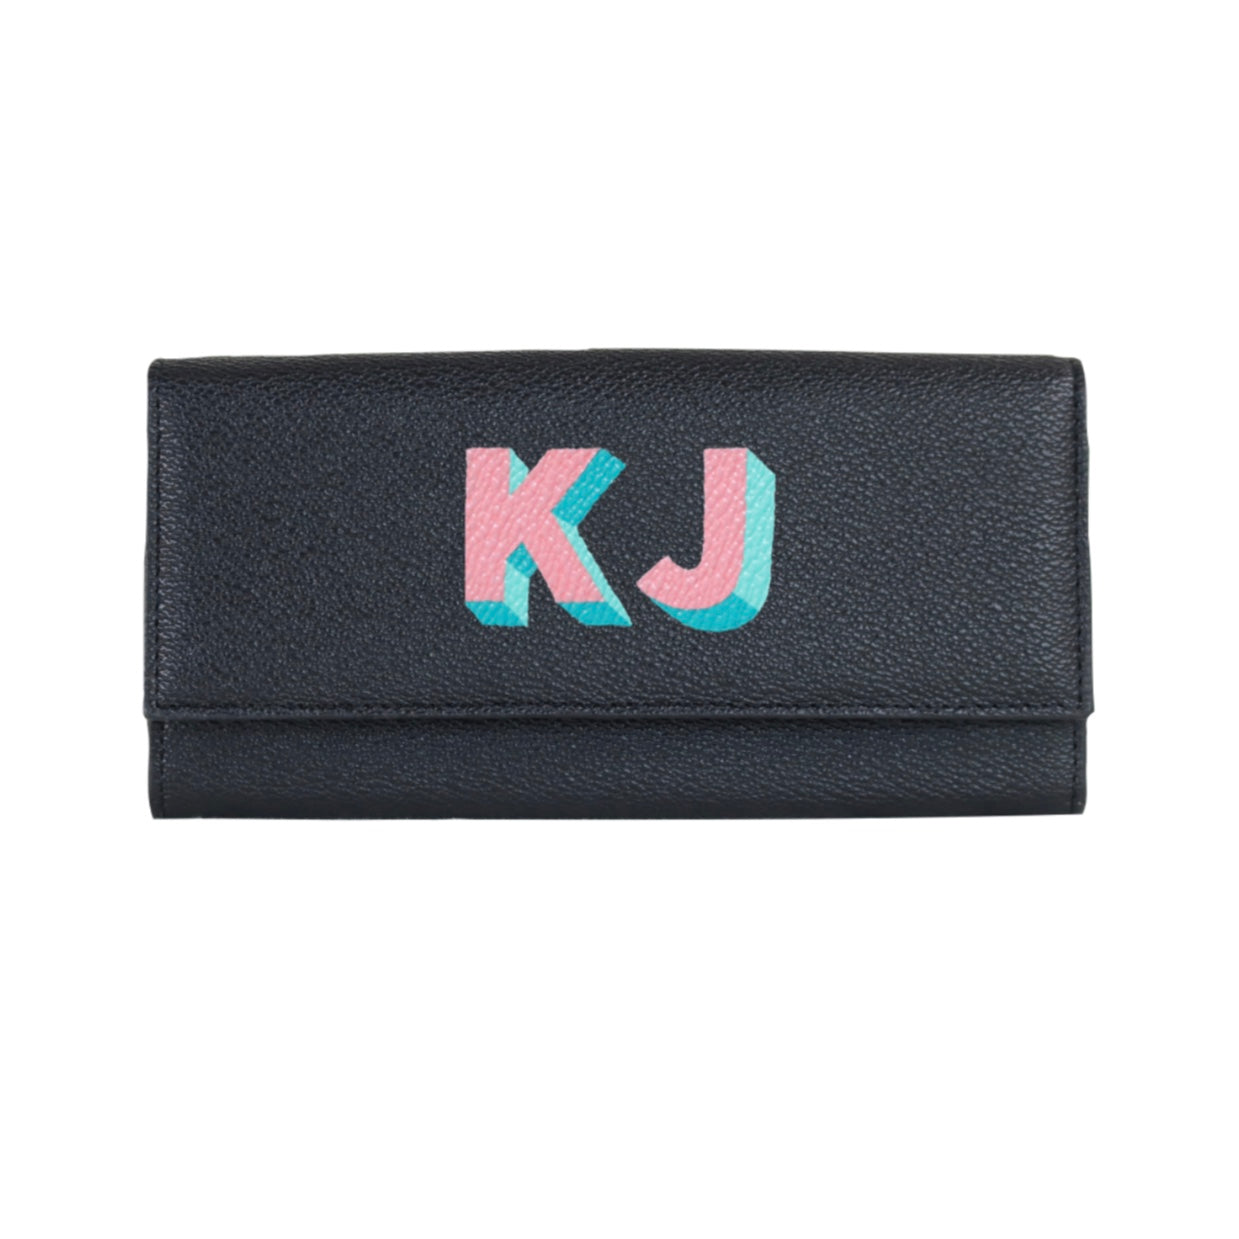 Luxtra London Esther Continental Wallet Personalised